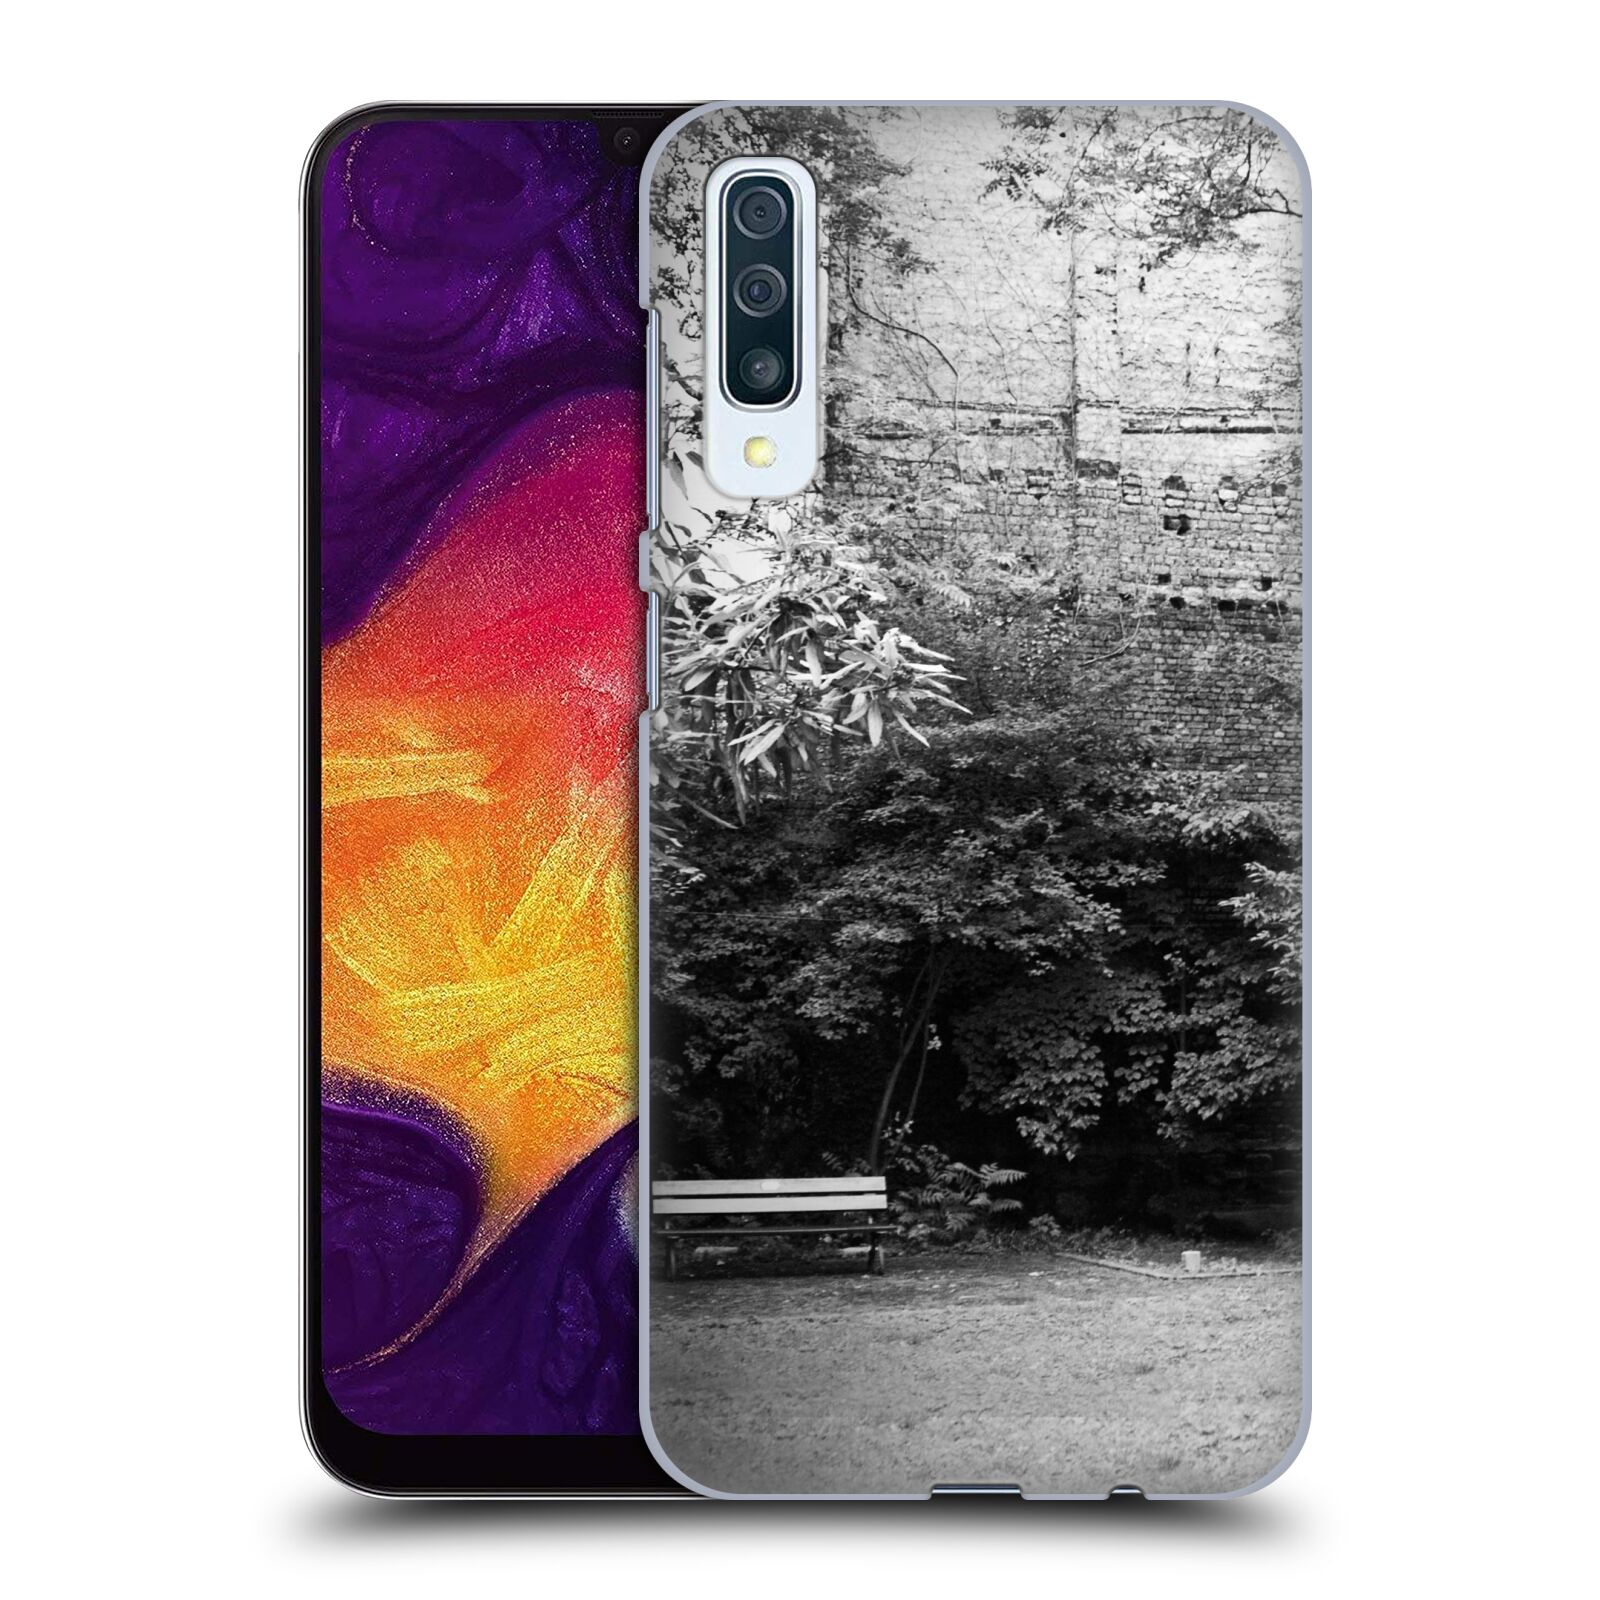 Official Dorit Fuhg City Street Life The Courtyard Case for Samsung Galaxy A50s (2019)